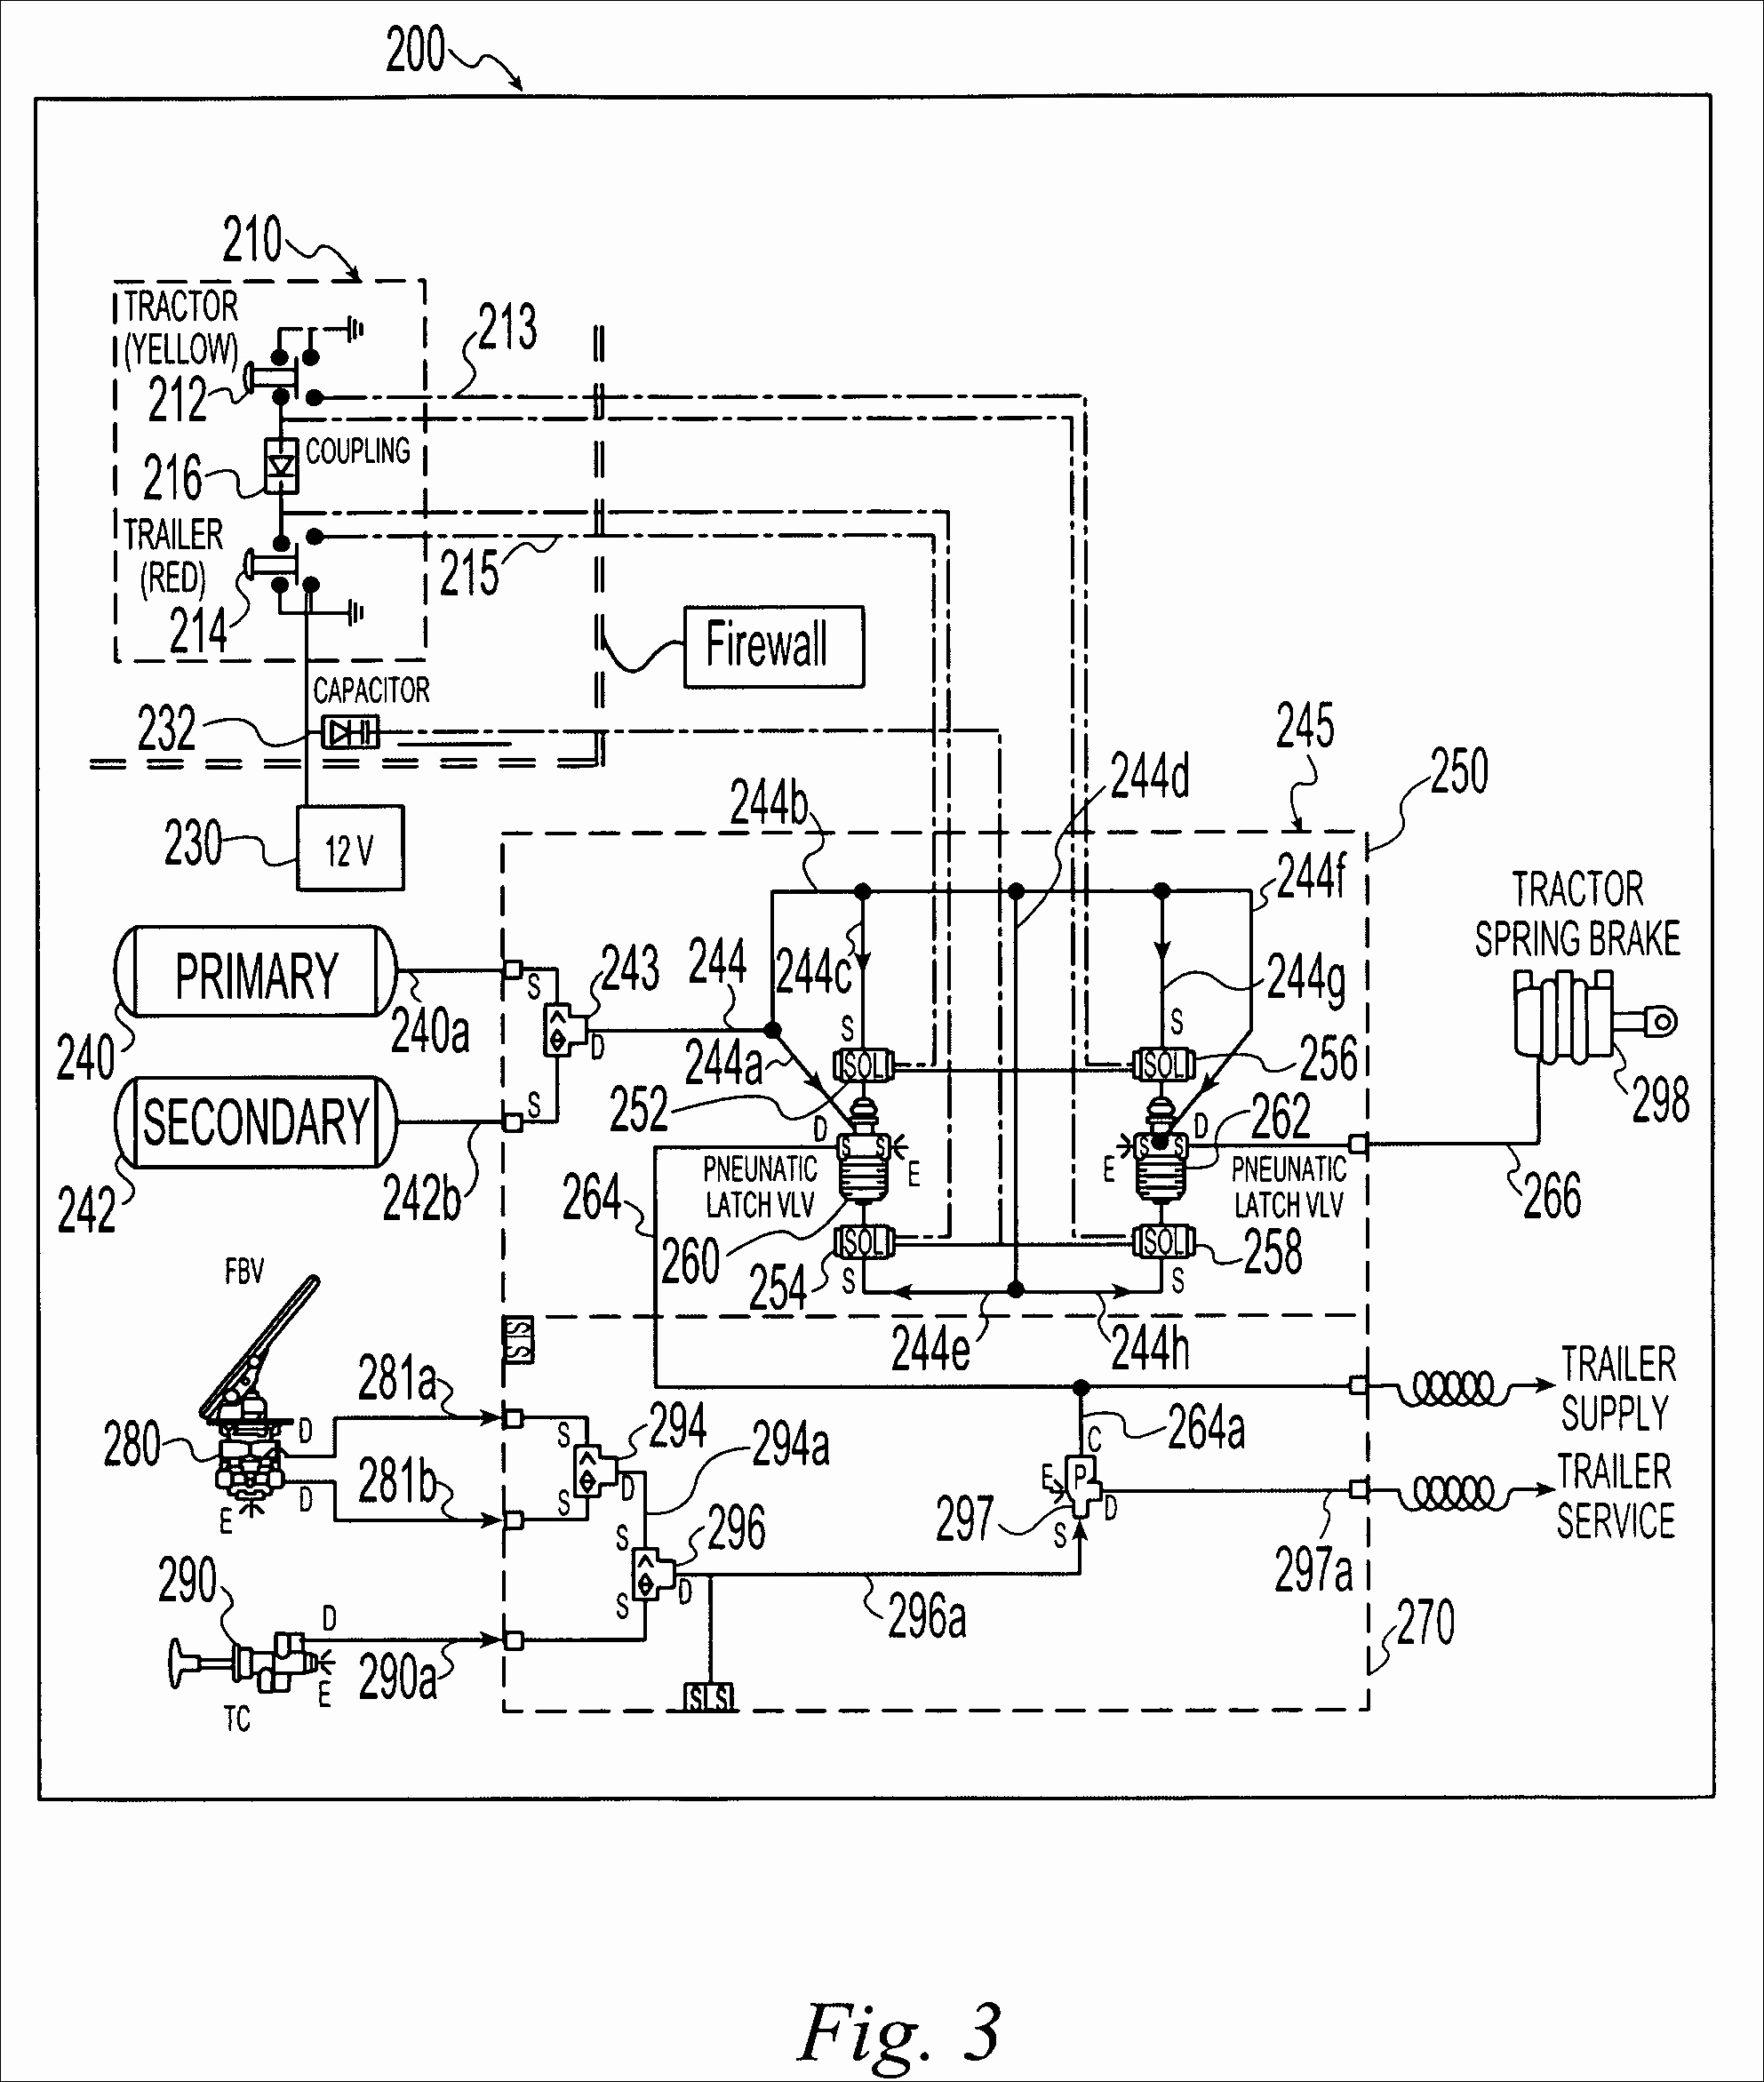 Diagram Chevy Silverado Wiring Harness Diagram Full